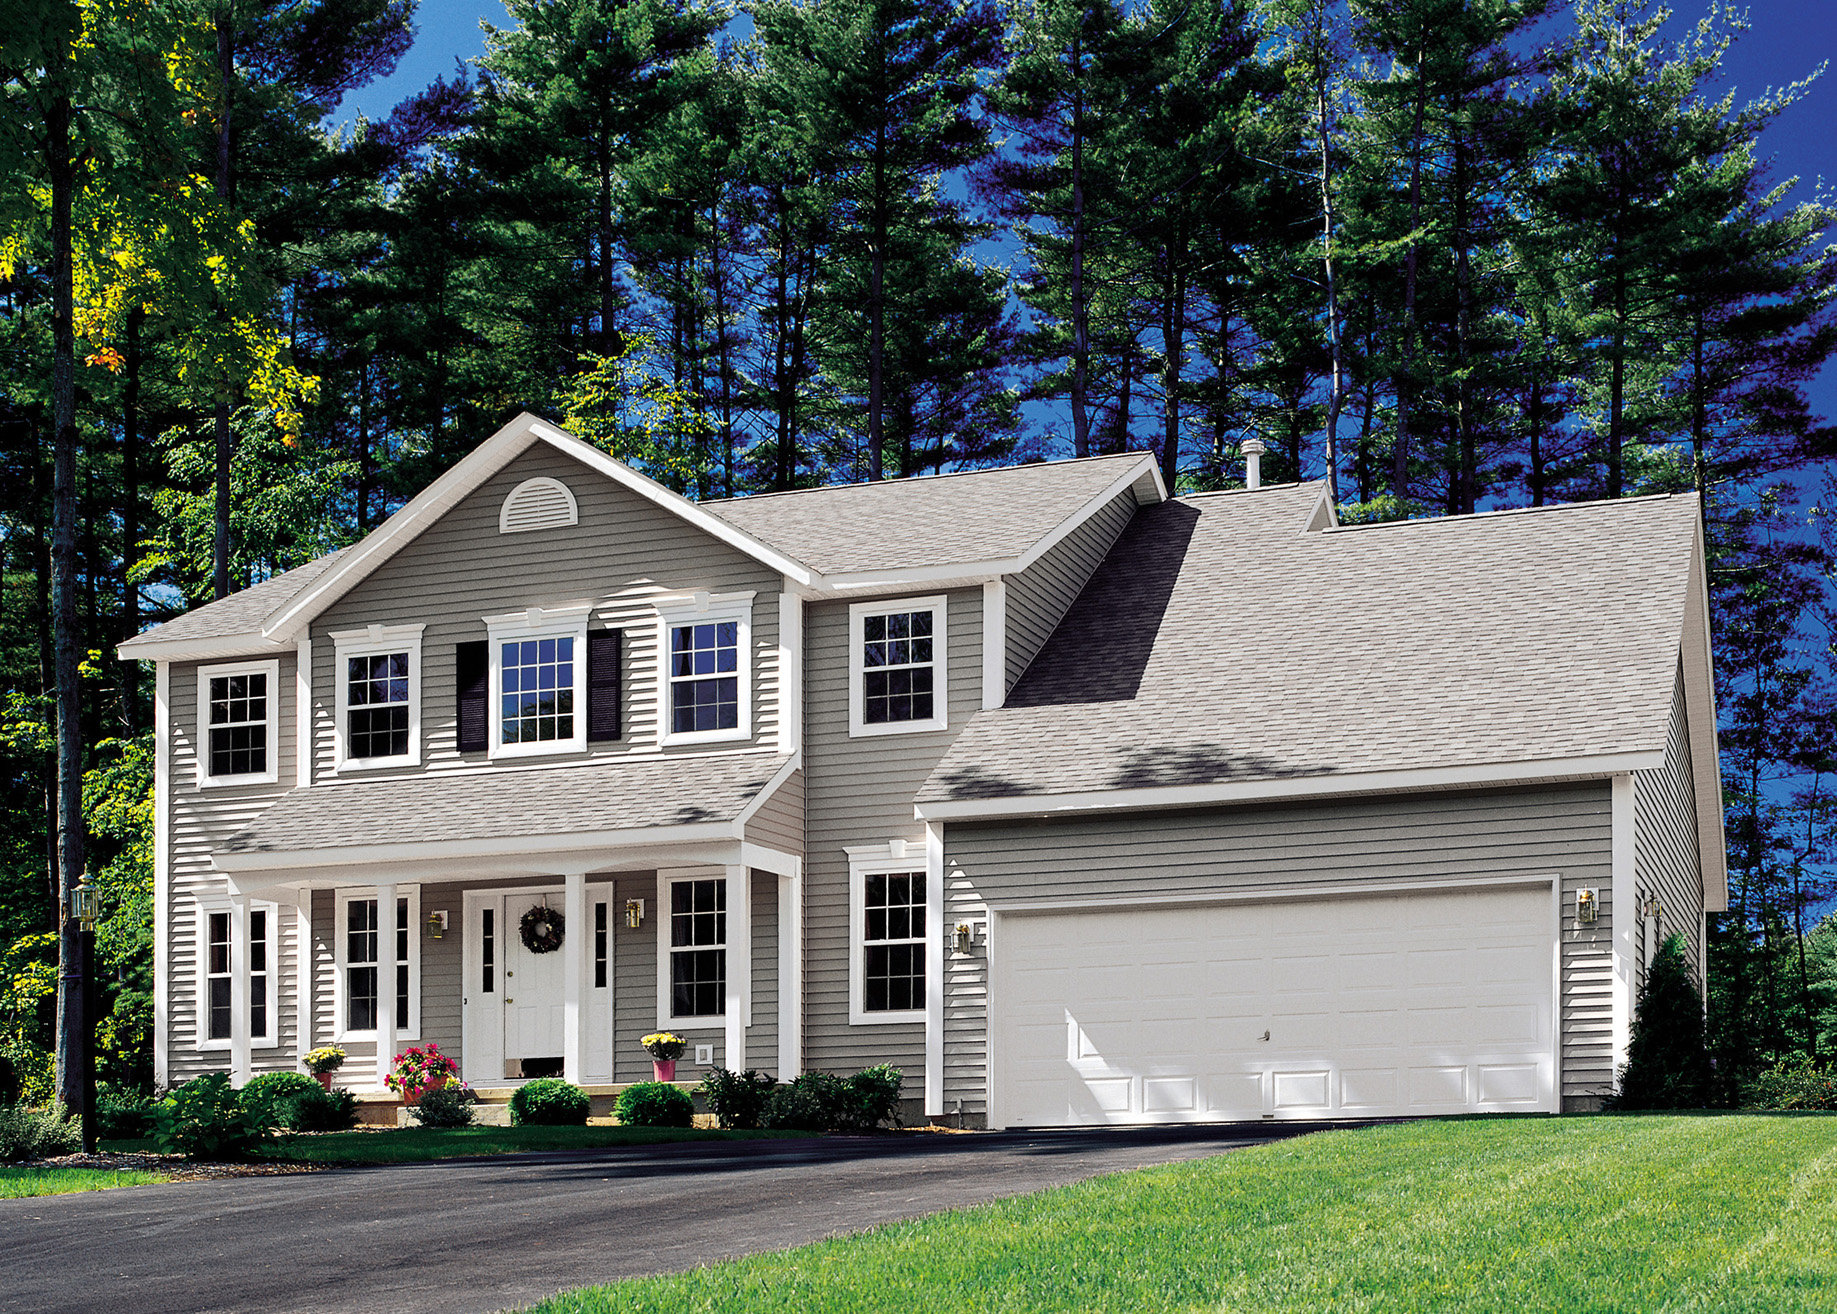 Sears Home Services provides siding installation service that you can trust